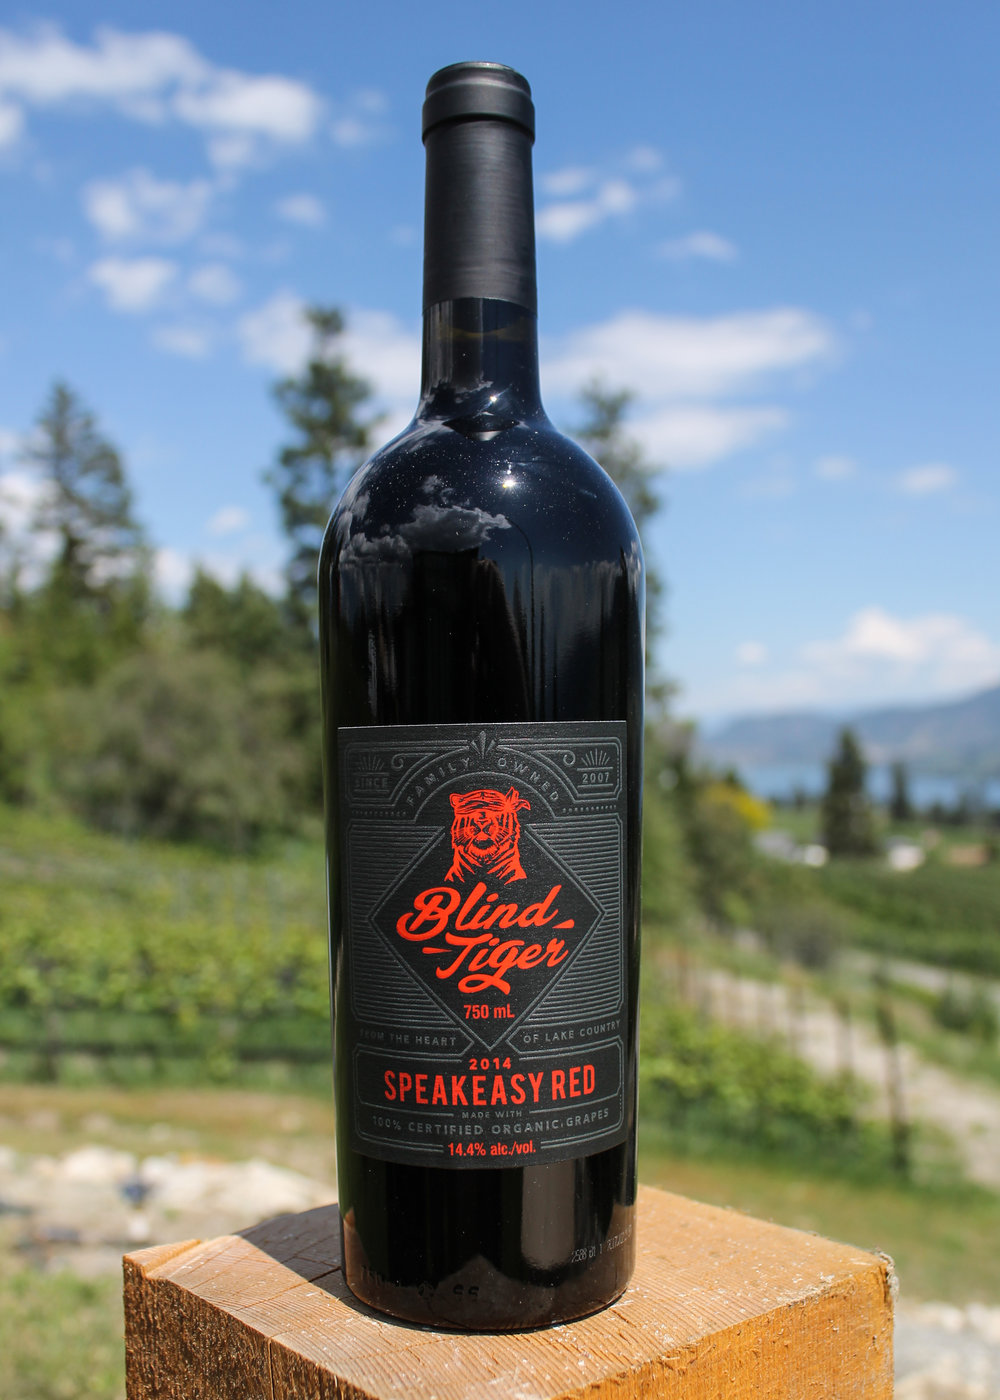 2014 Speakeasy Red - 2014 Speakeasy Red $36.95Our classic Bordeaux Blend (Meritage) style wine with Cabernet Sauvignon, Cabernet Franc, Merlot, and Syrah. Deep aromas of Lapin Cherry, Plum, Blackberry and Cedar. Barreled in American Oak, this full bodied wine is the choice of red wine lovers. Ensure to decant before drinking. The tannins of this wine will allow a long cellar life of up to 8 years plus.